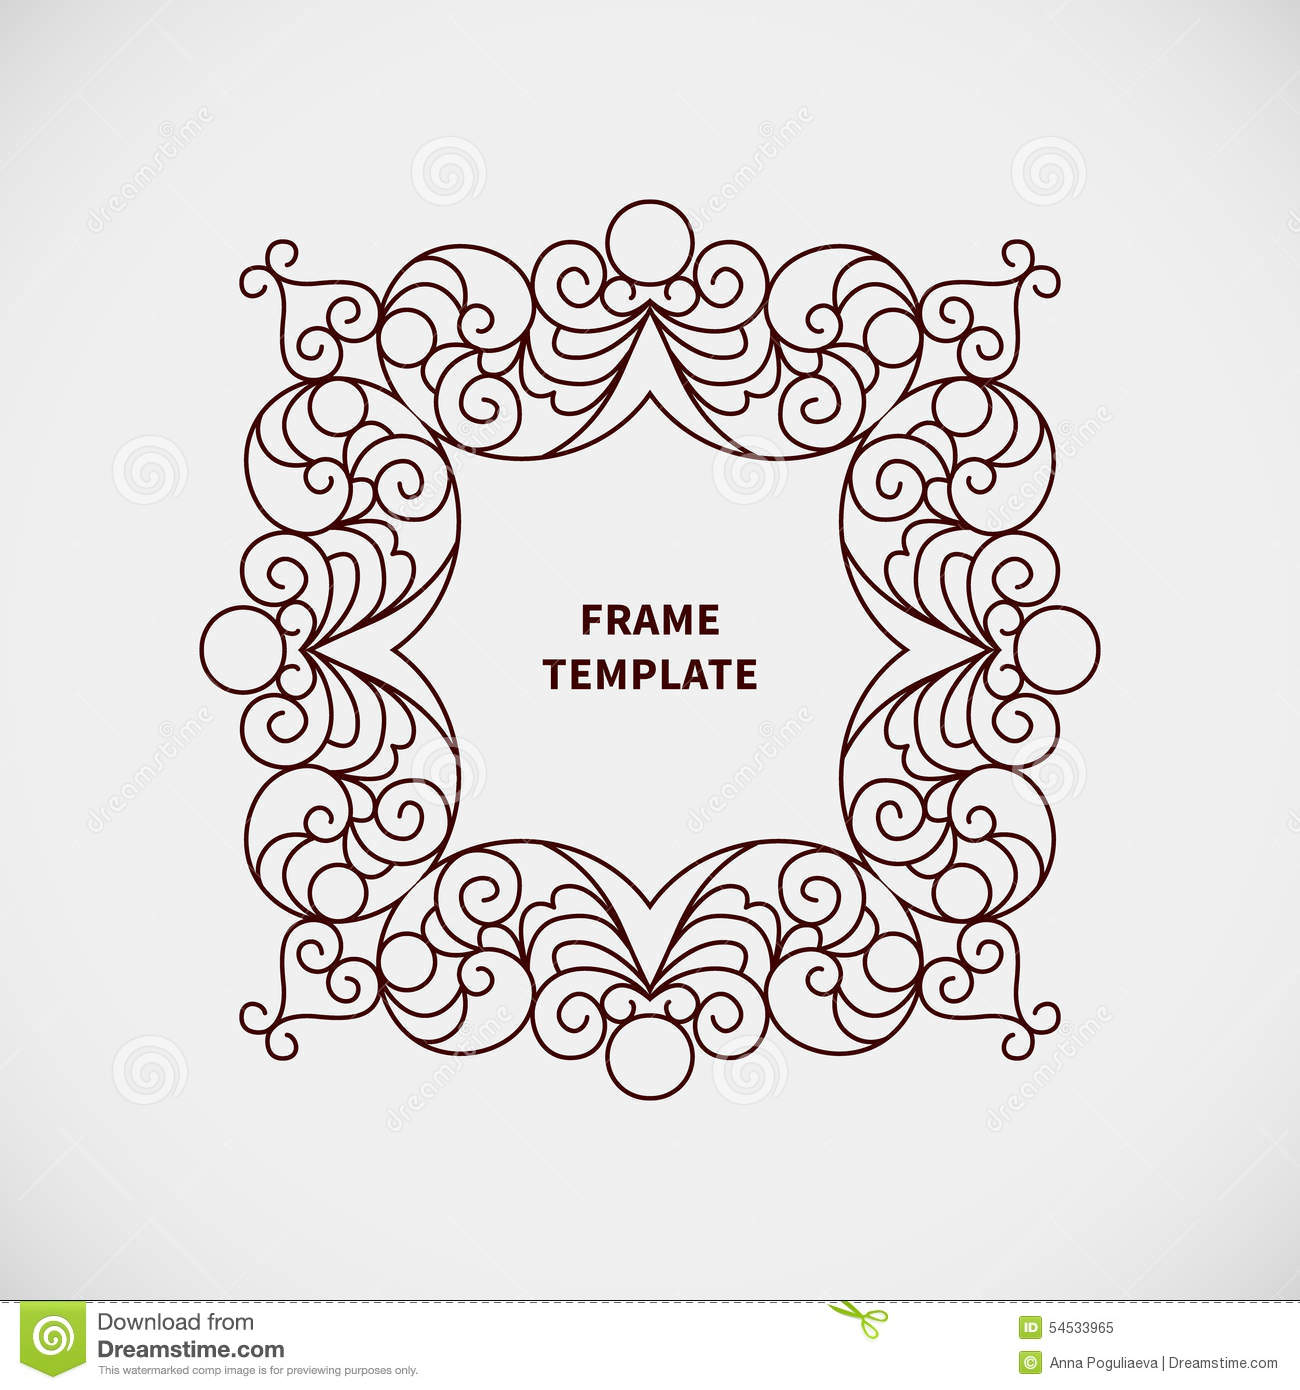 Frame Design Line Art : Vector decorative line art frame for design template